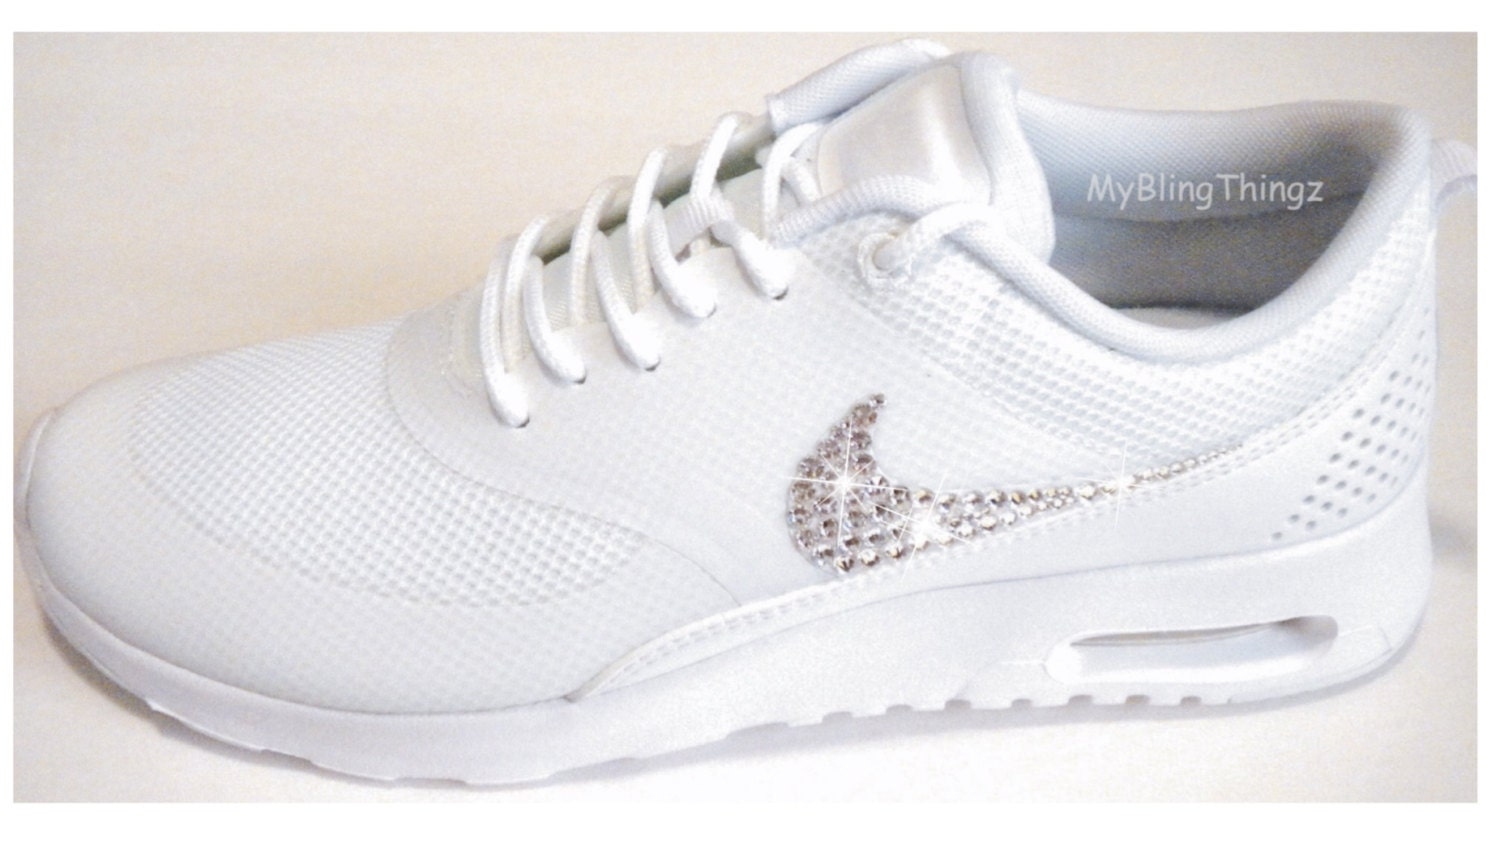 Bling Nike Shoes With Swarovski Crystals Nike Air Max Thea